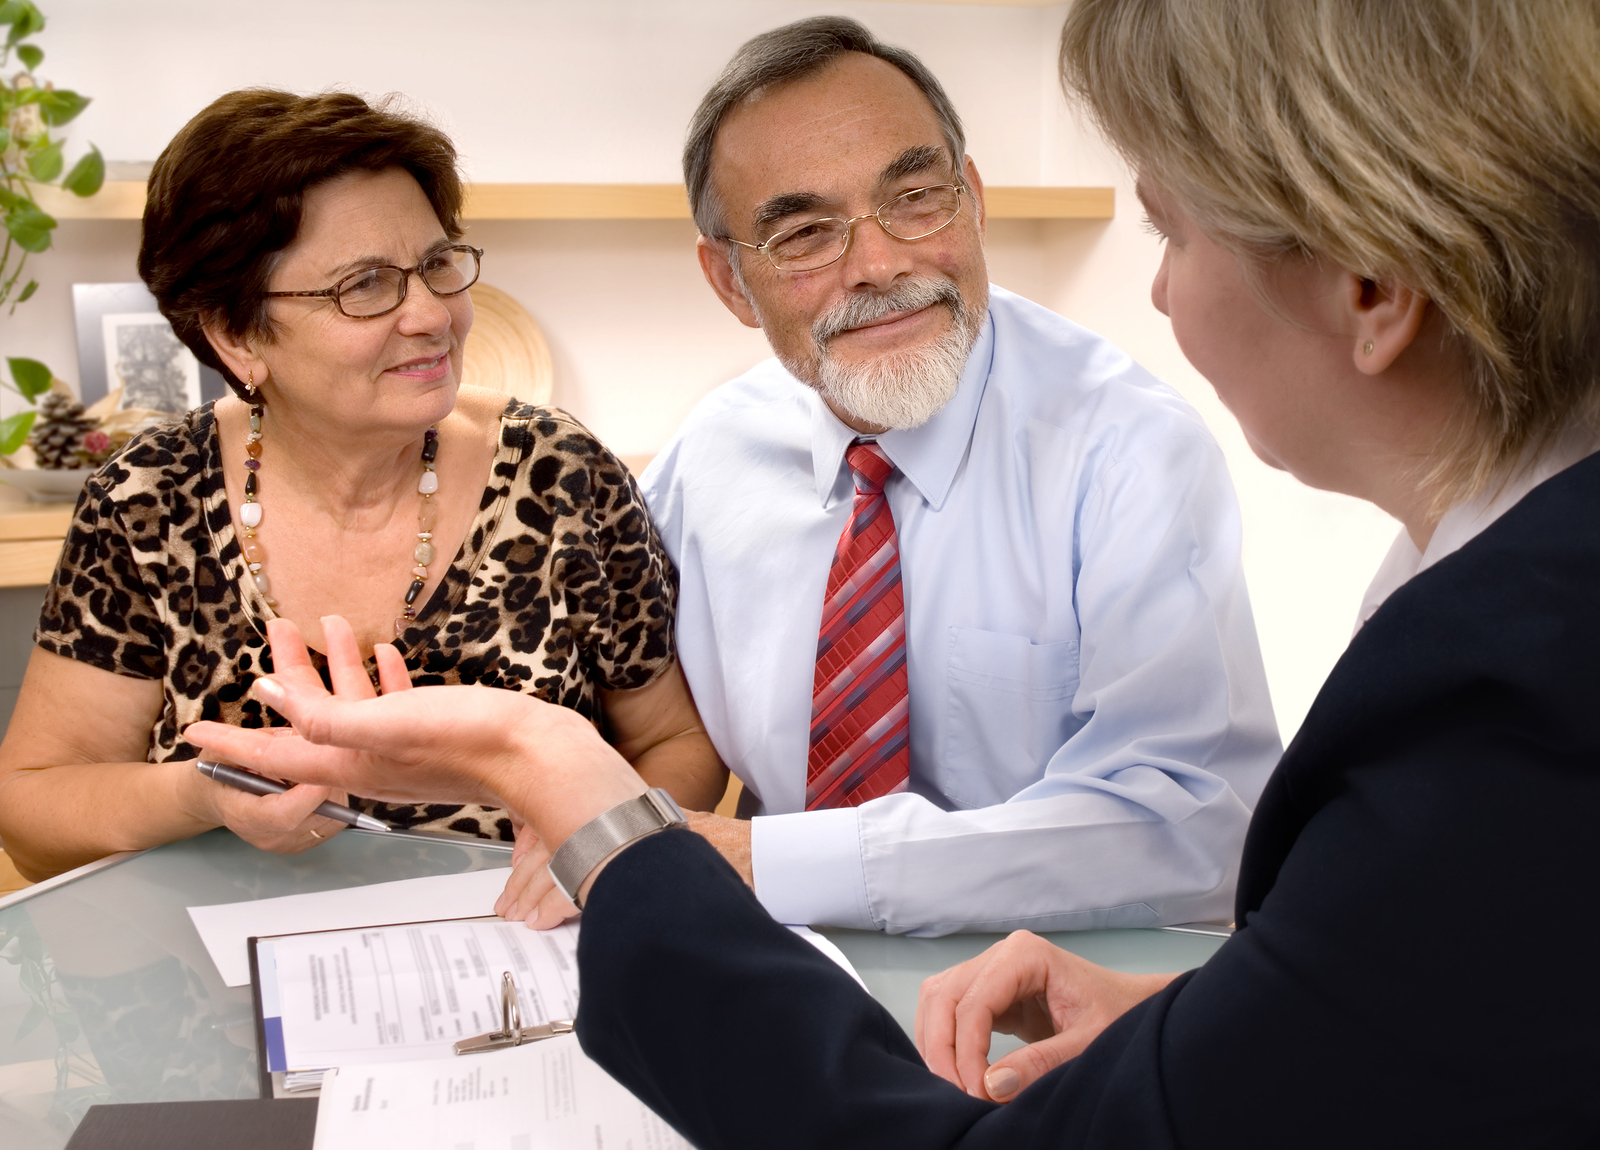 Wills and Estate Attorneys in Maryland